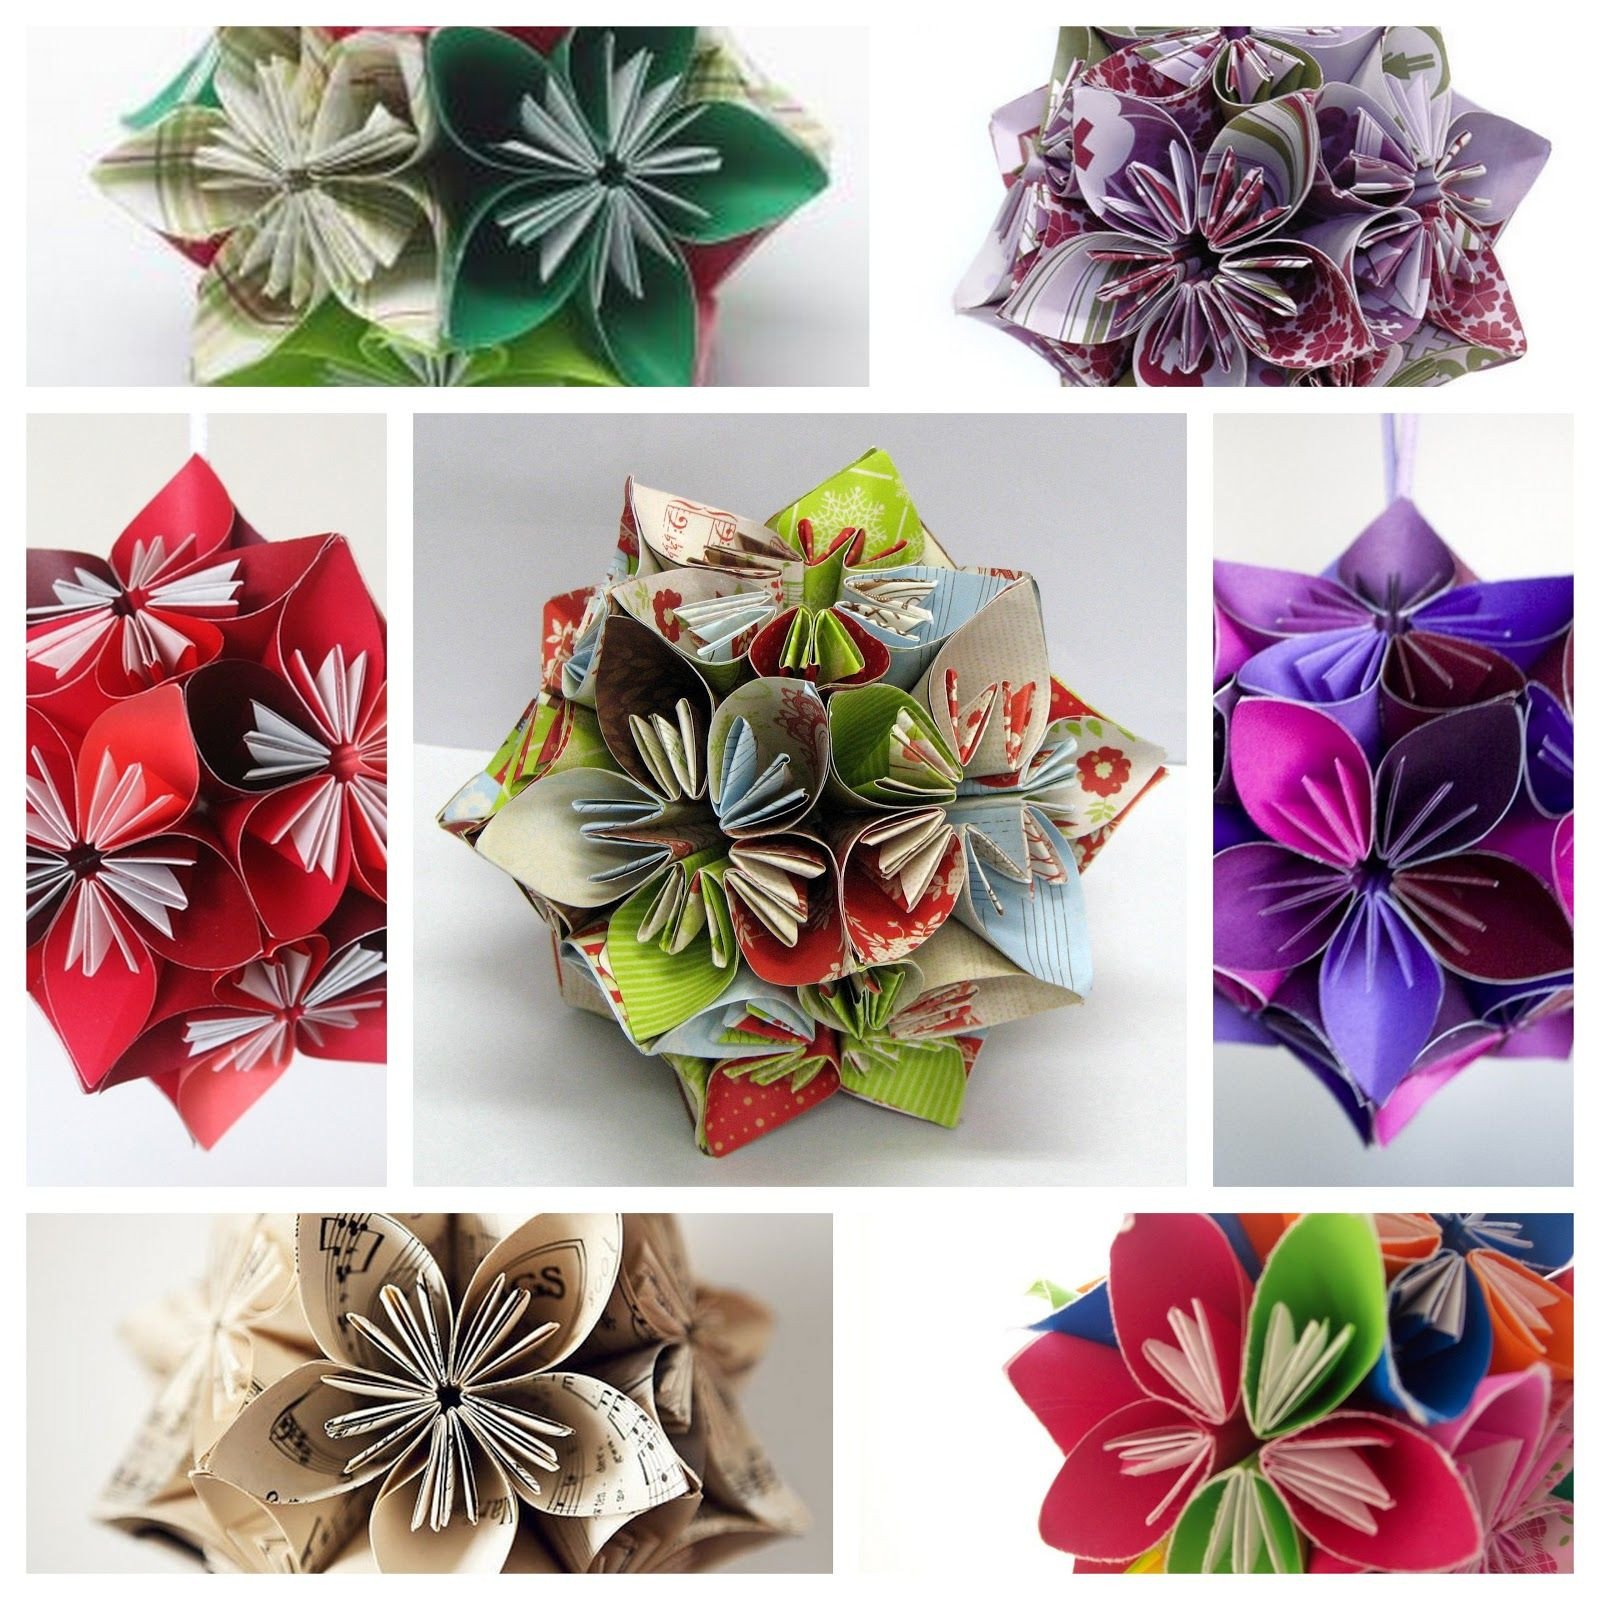 Recycled Craft Ideas For Adults  Christmas Paper Crafts For Adults